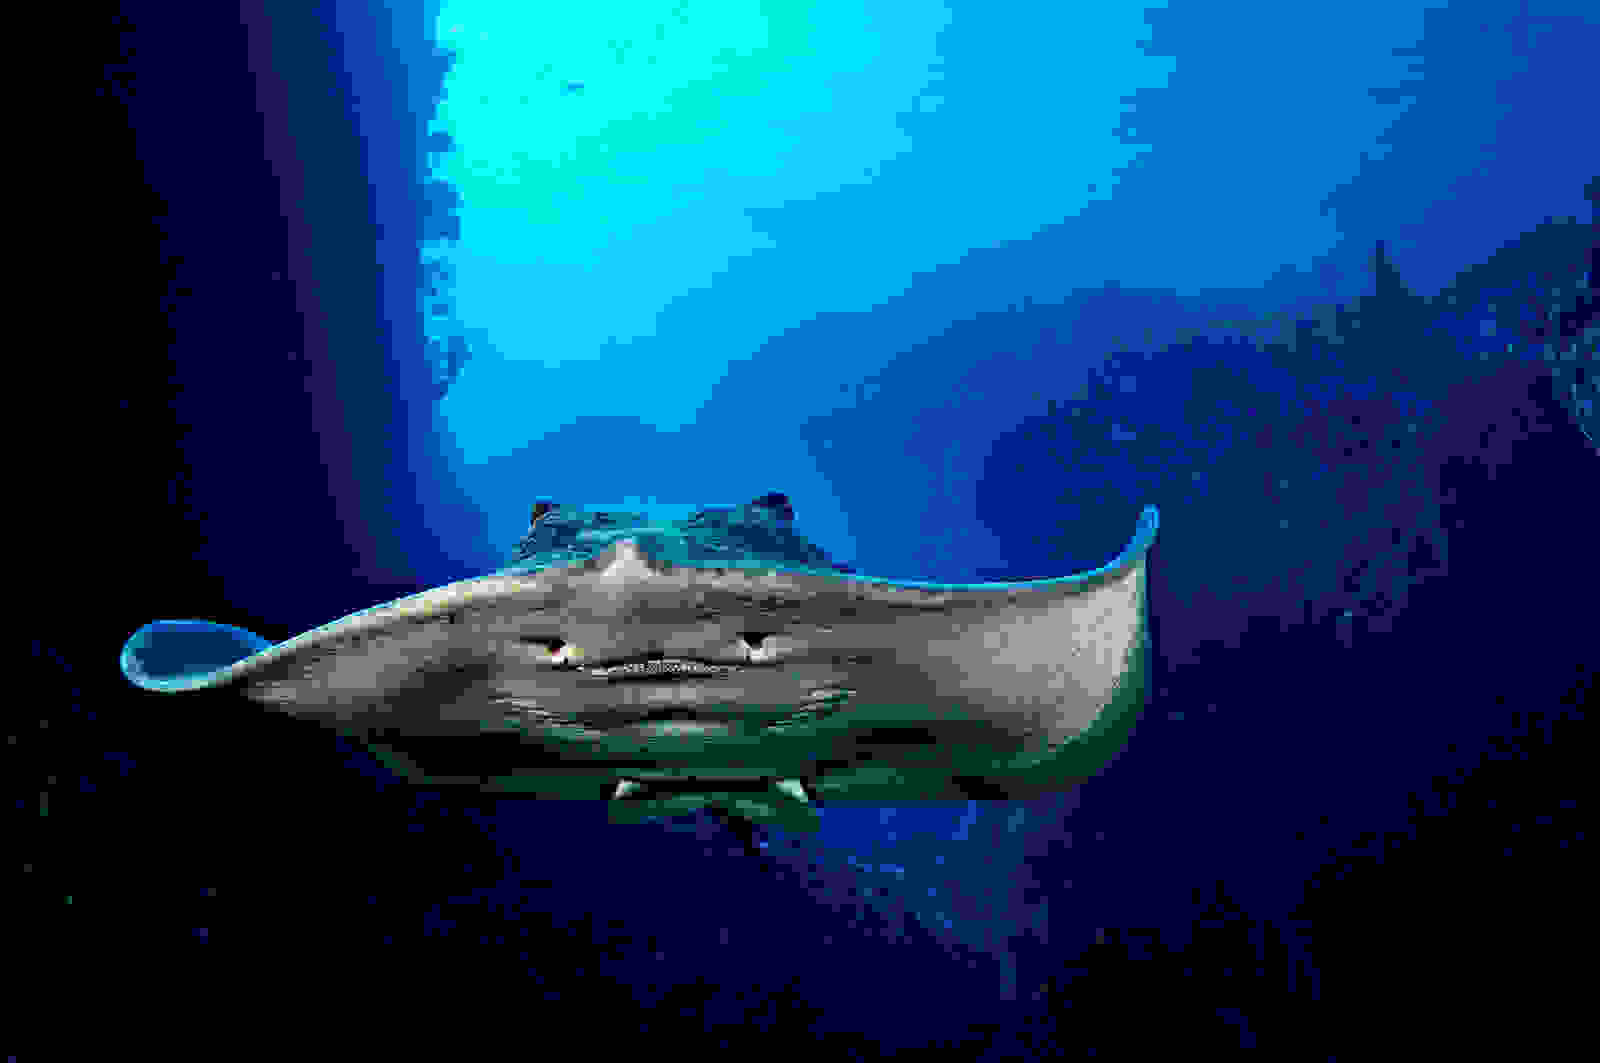 Stingray-In-Canyon.jpg